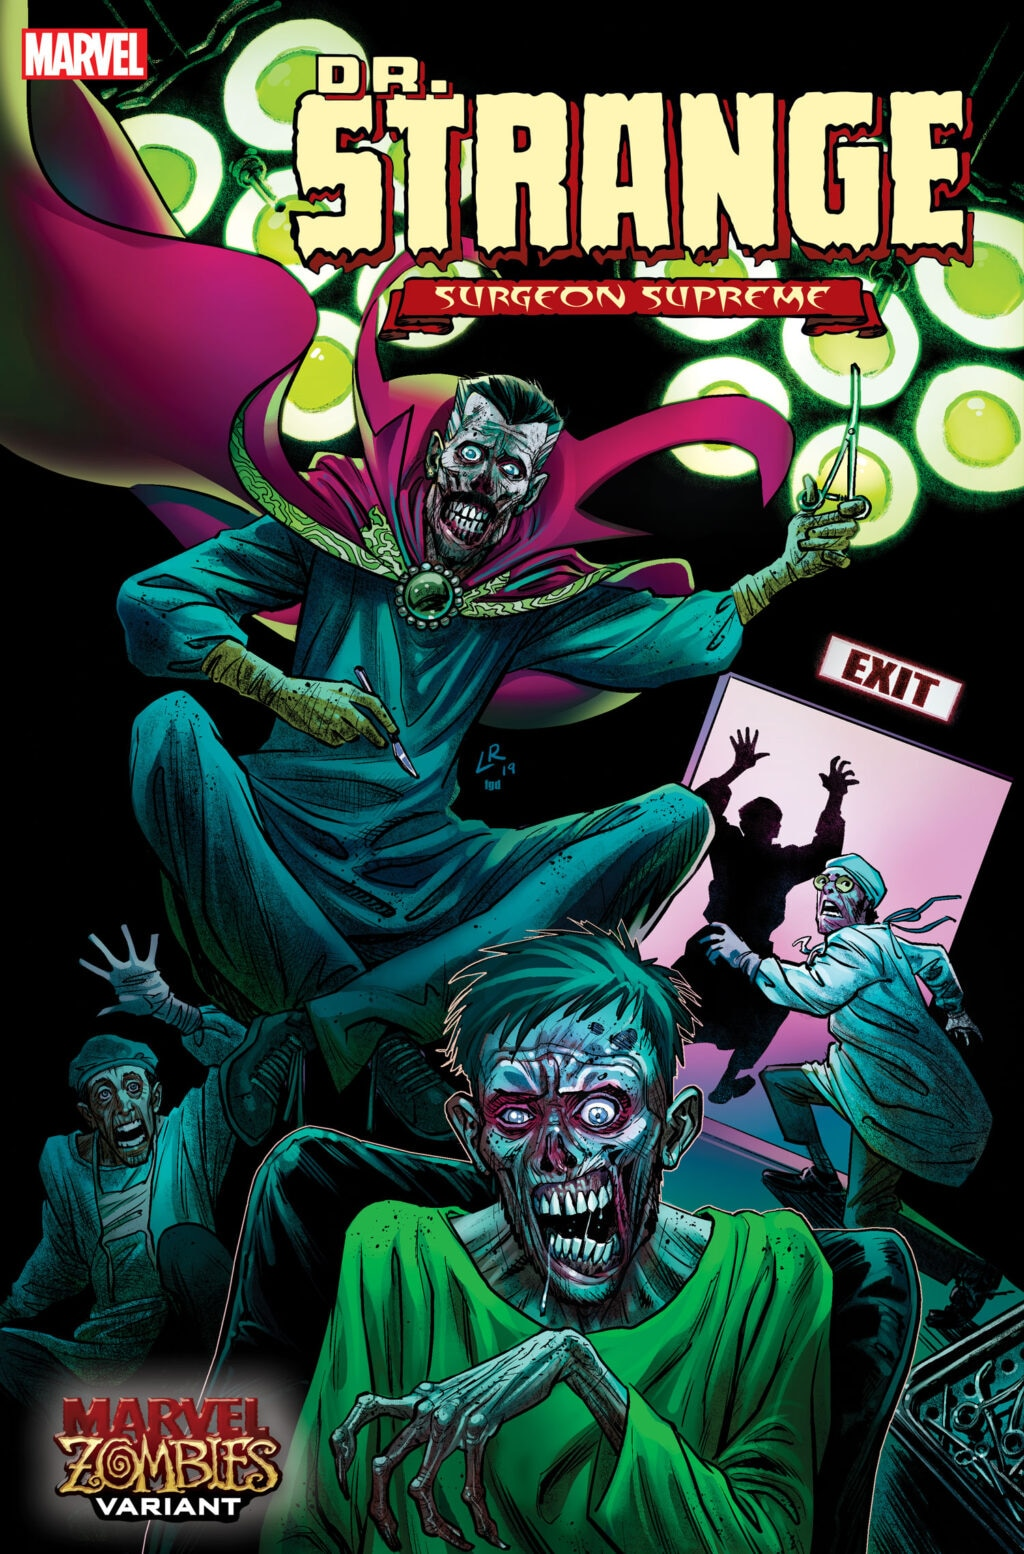 DRS2019005 Luke Ross Zombie var 1024x1554 - Image Gallery: The Undead Rise in April's MARVEL ZOMBIES Variant Covers